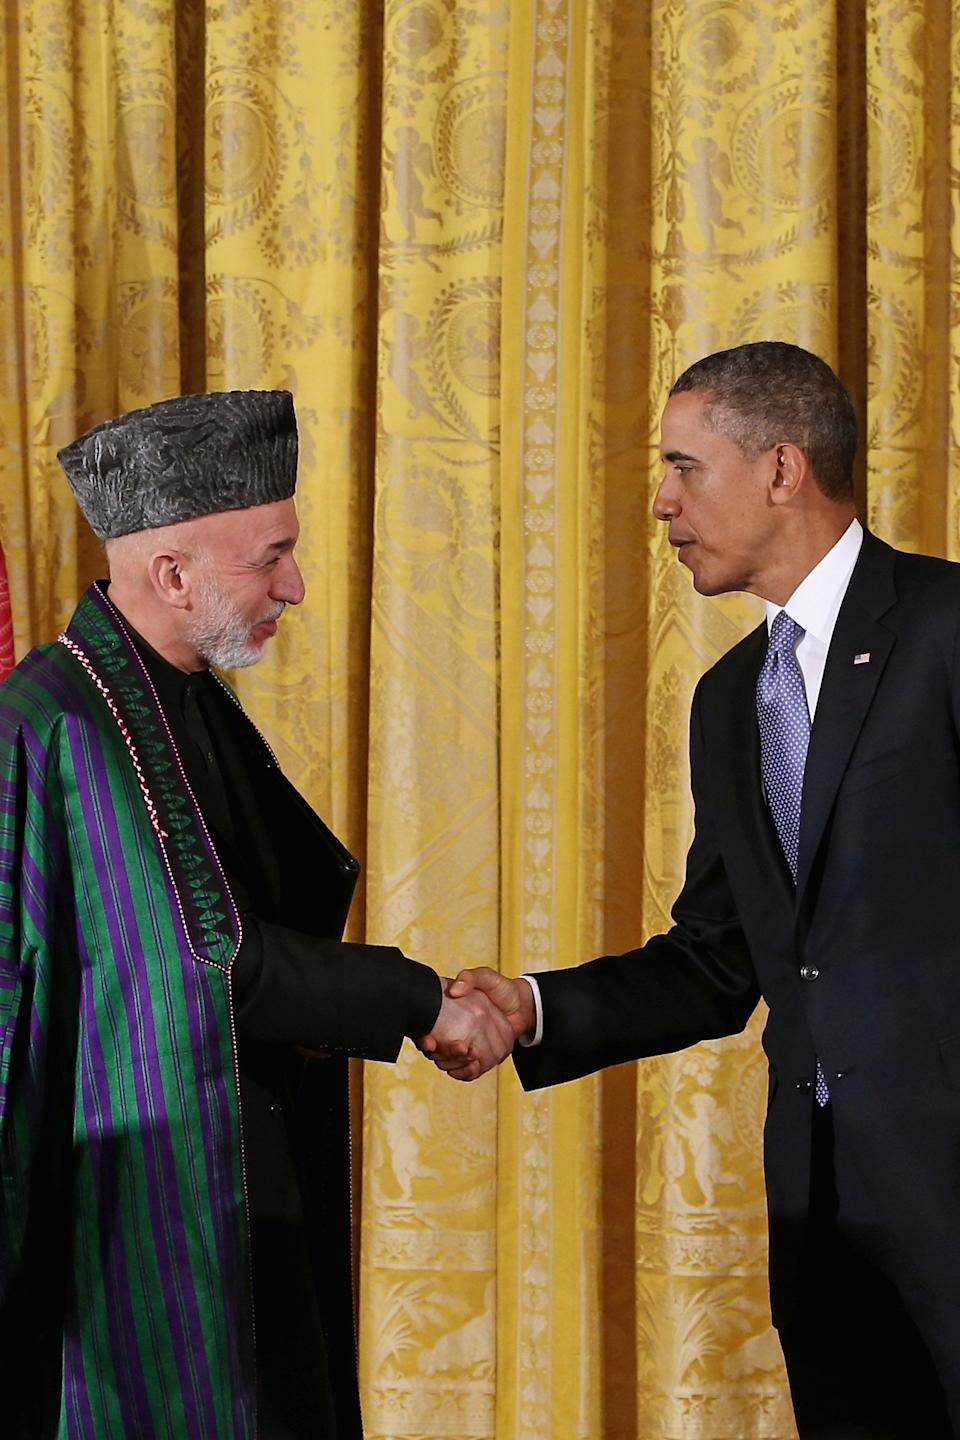 Afghanistan President Hamid Karzai and U.S. President Barack Obama shake hands after a joint news conference in the East Room of the White House on Jan. 11, 2013 in Washington, D.C.